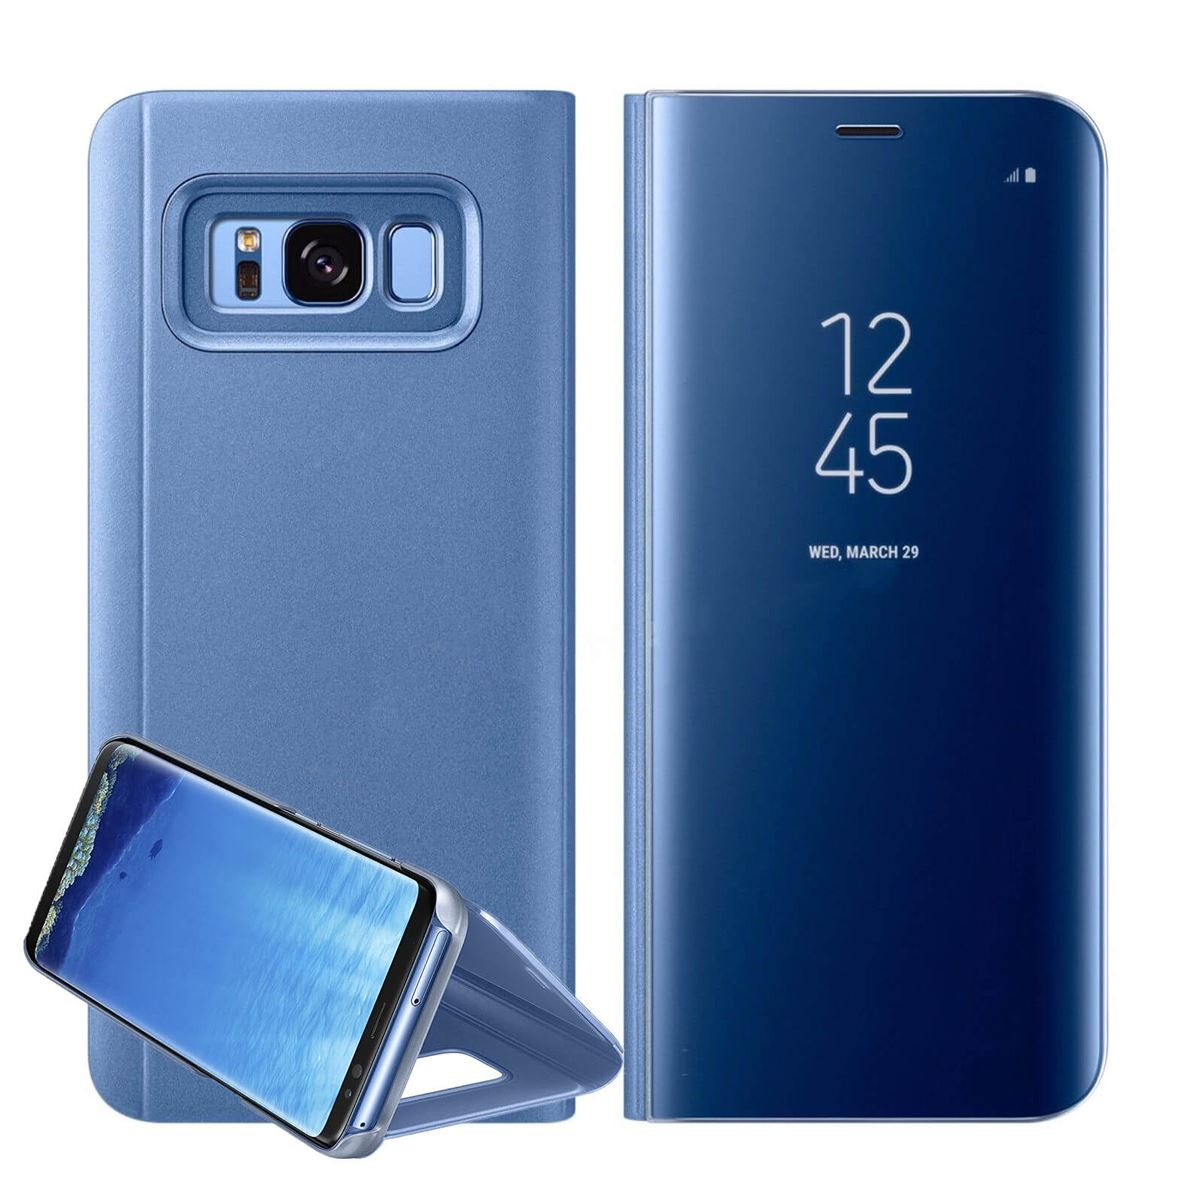 New-Samsung-Galaxy-S10-S9-S8-Smart-View-Mirror-Leather-Flip-Stand-Case-Cover thumbnail 42